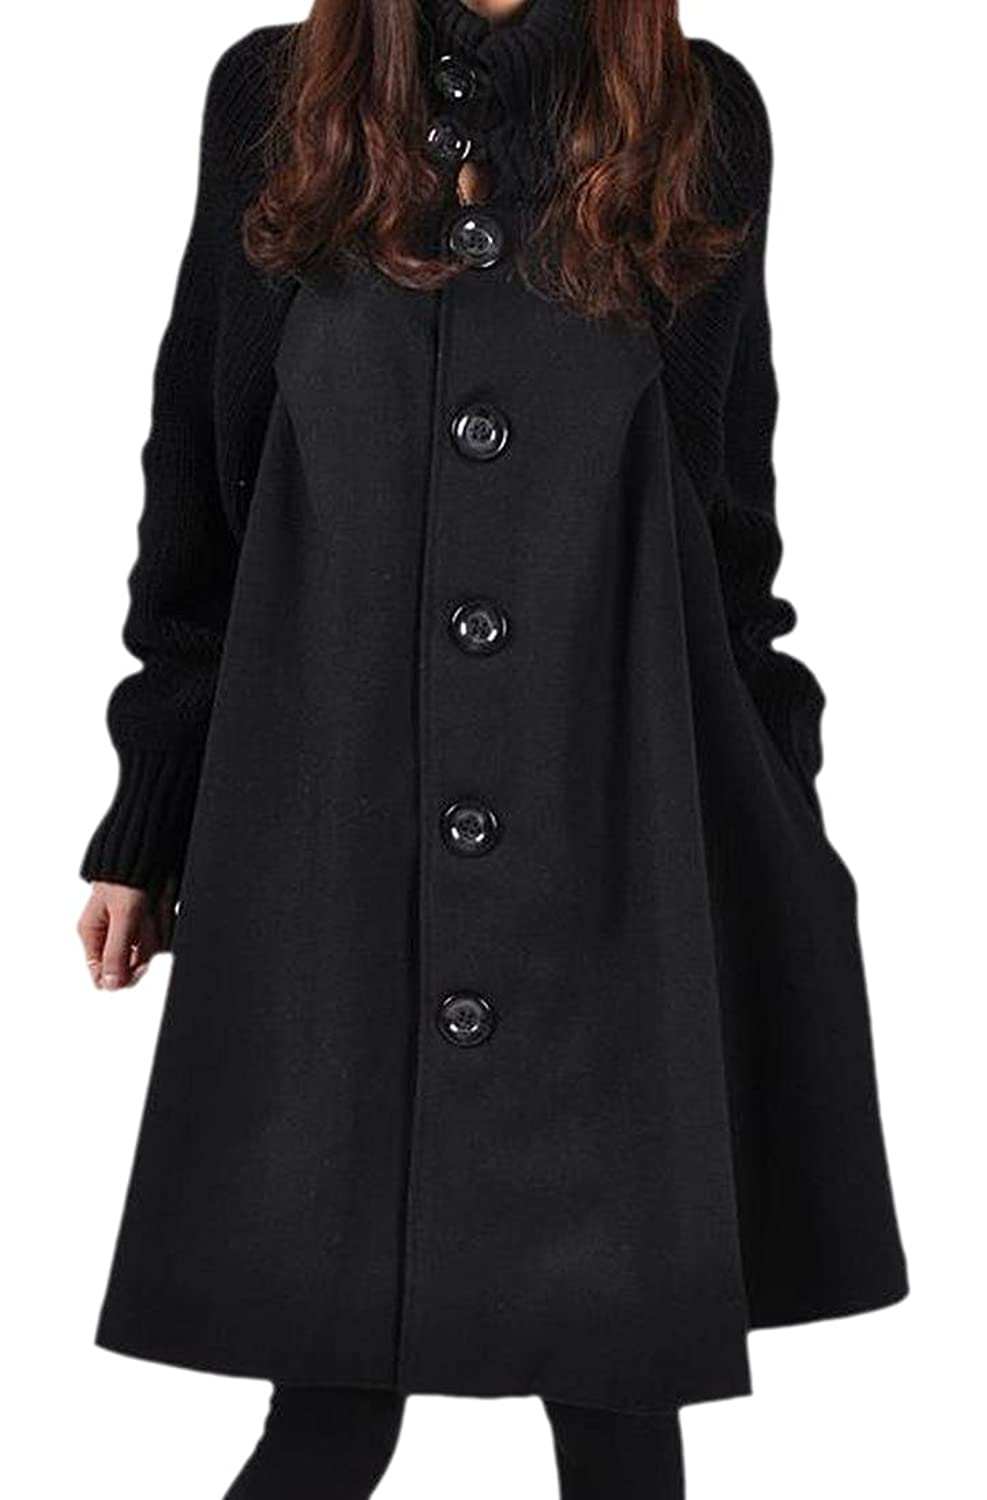 Zago Women's Solid Colored Simple Long Sleeve Woolen Coat